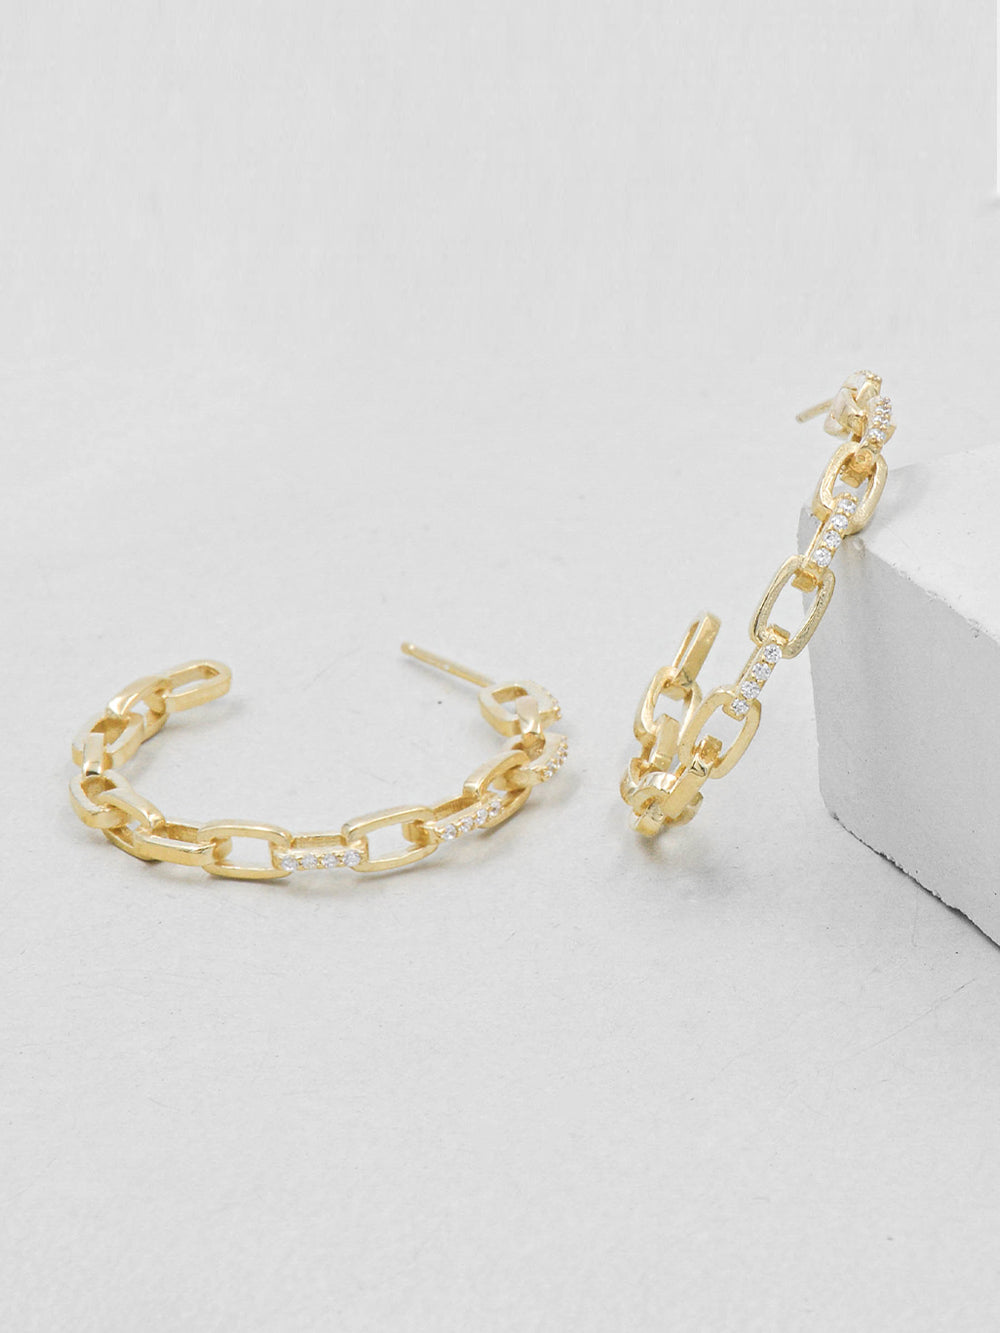 Gold Paperclip Chain Hoop Dainty Earrings by The Faint Hearted Jewelry